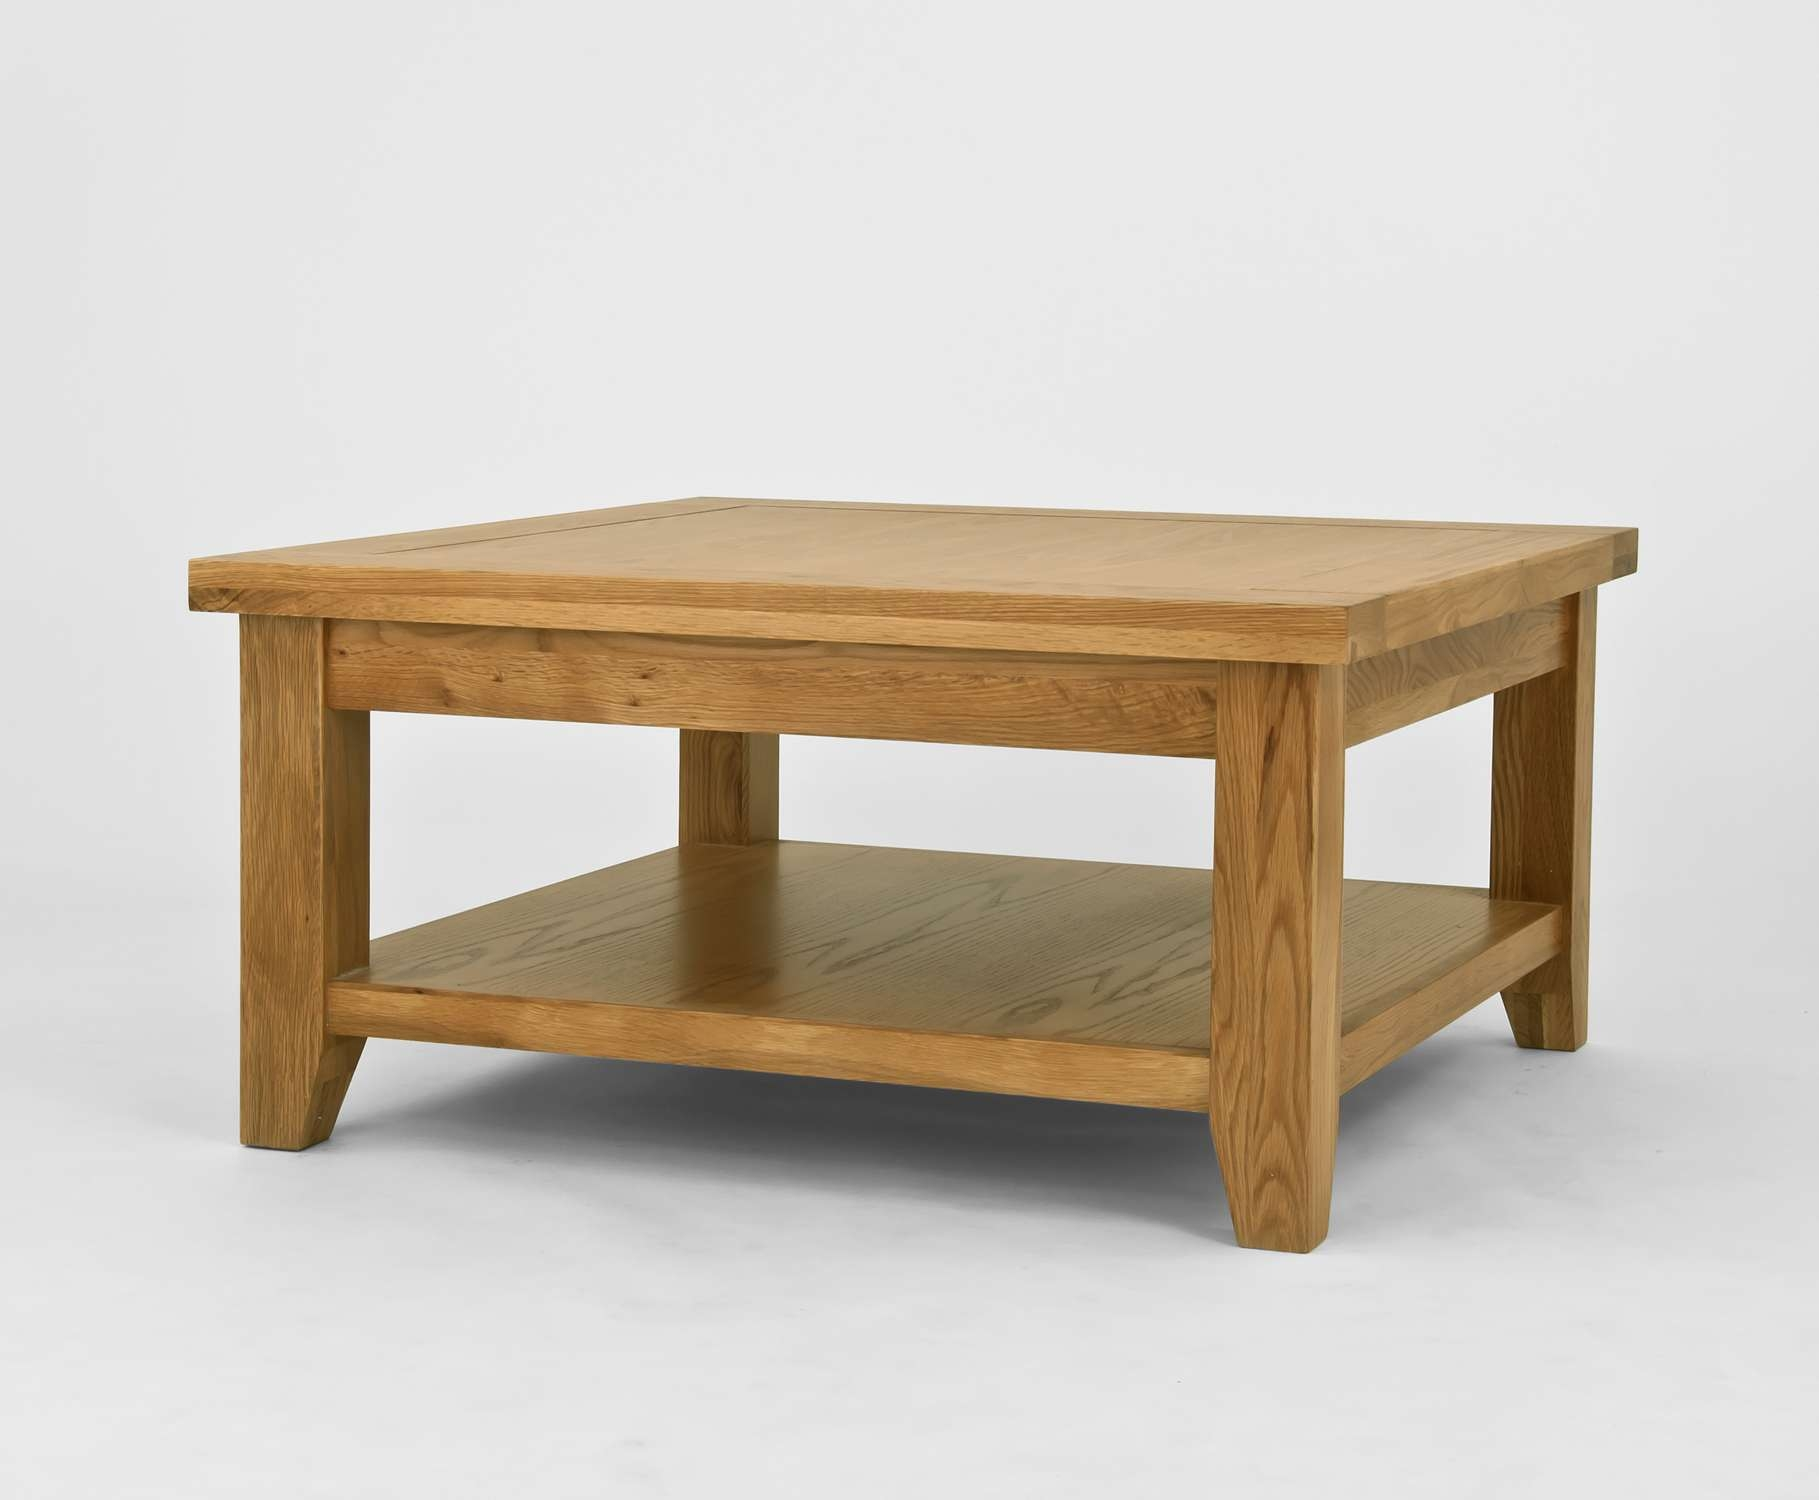 Most Current Oak Coffee Tables With Storage For Oak Coffee Table Solid Oak Coffee Table With Storage (View 12 of 20)